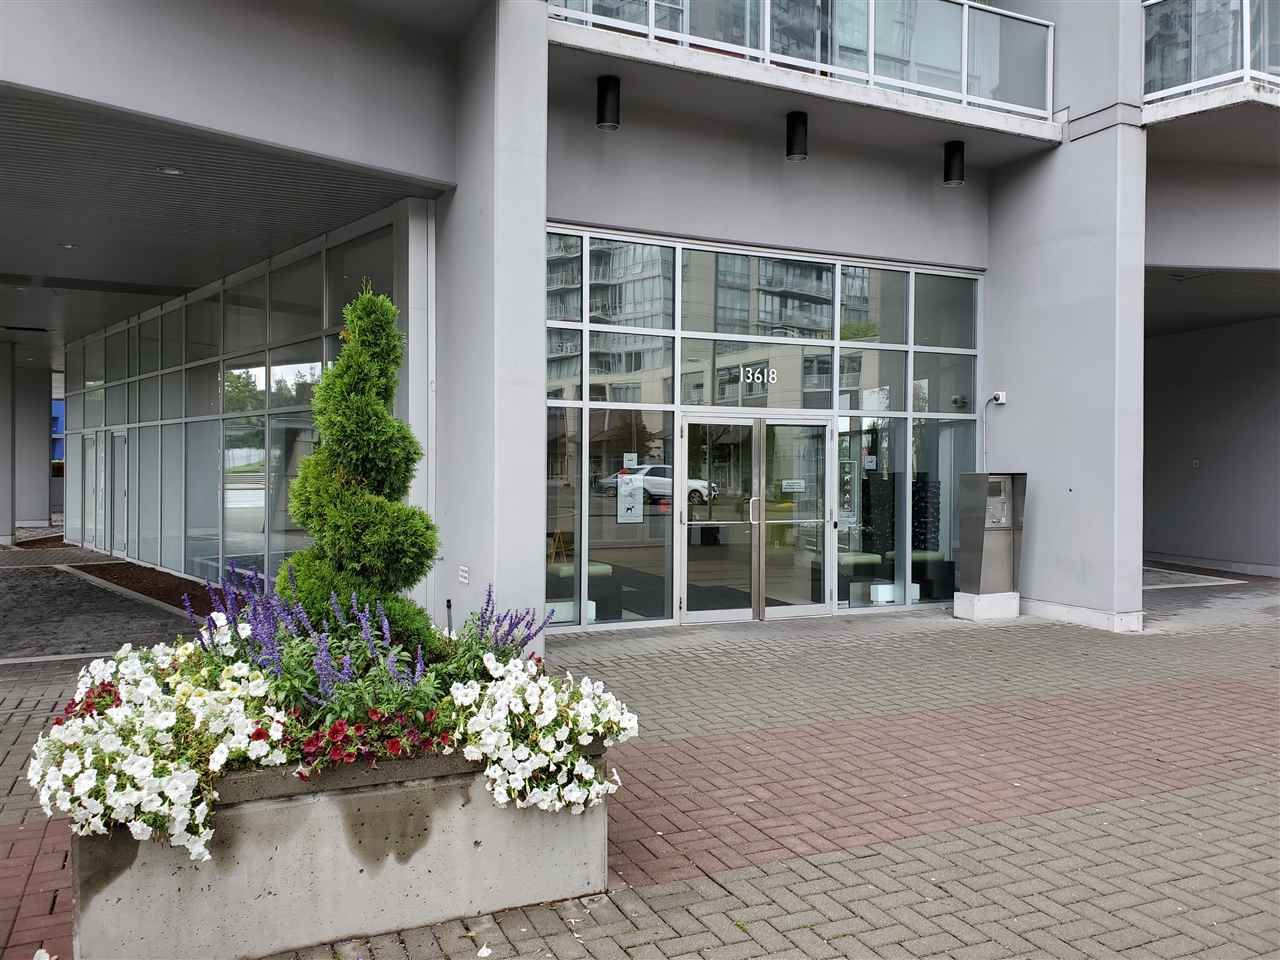 """Main Photo: 401 13618 100 Avenue in Surrey: Whalley Condo for sale in """"INFINITY TOWERS"""" (North Surrey)  : MLS®# R2501888"""